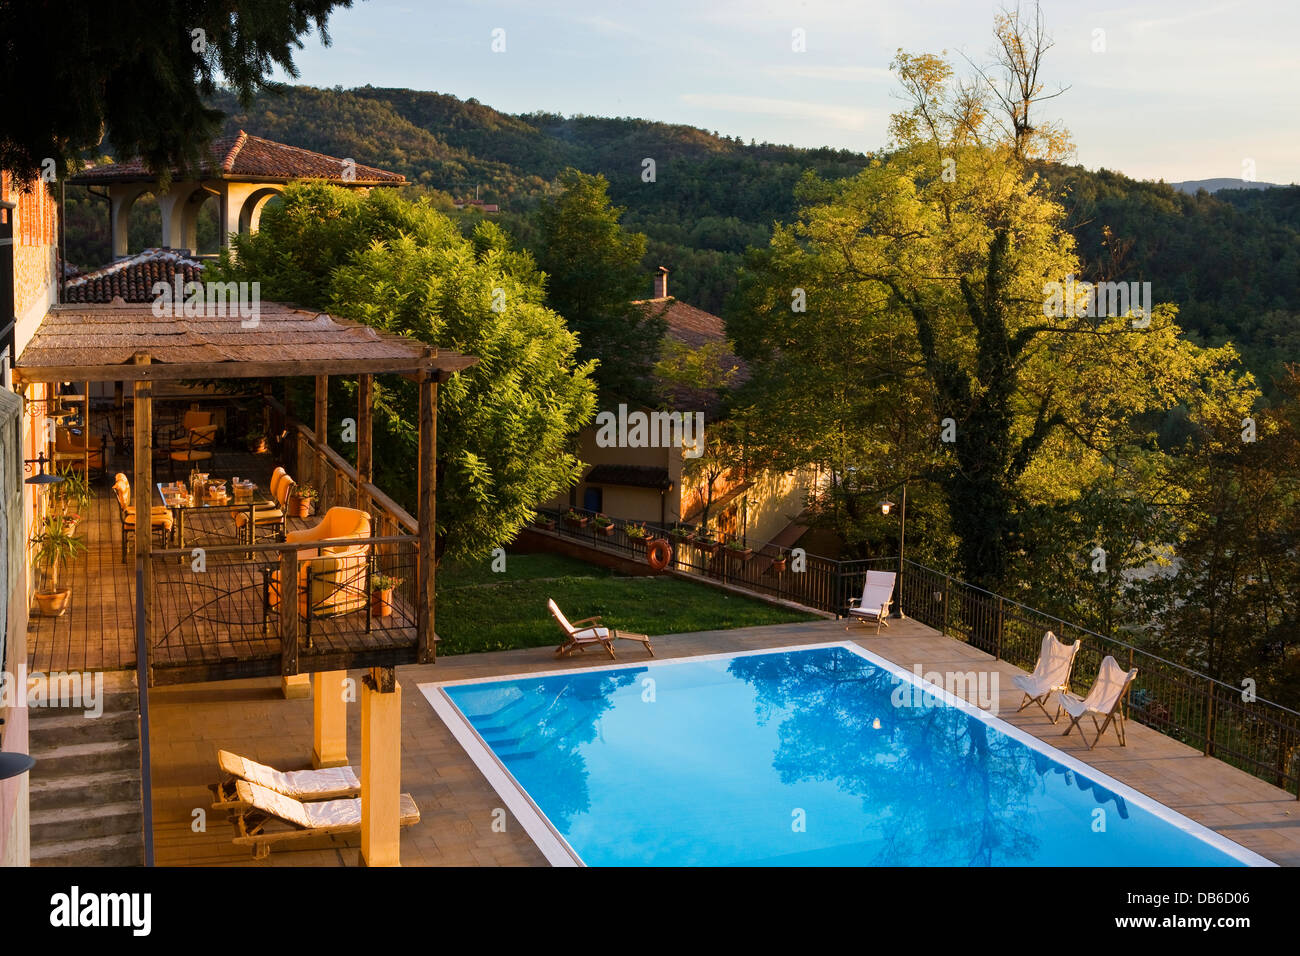 Casa Wallace Italy Piedmont Cremolino Casa Wallace Hotel The Swimming Pool